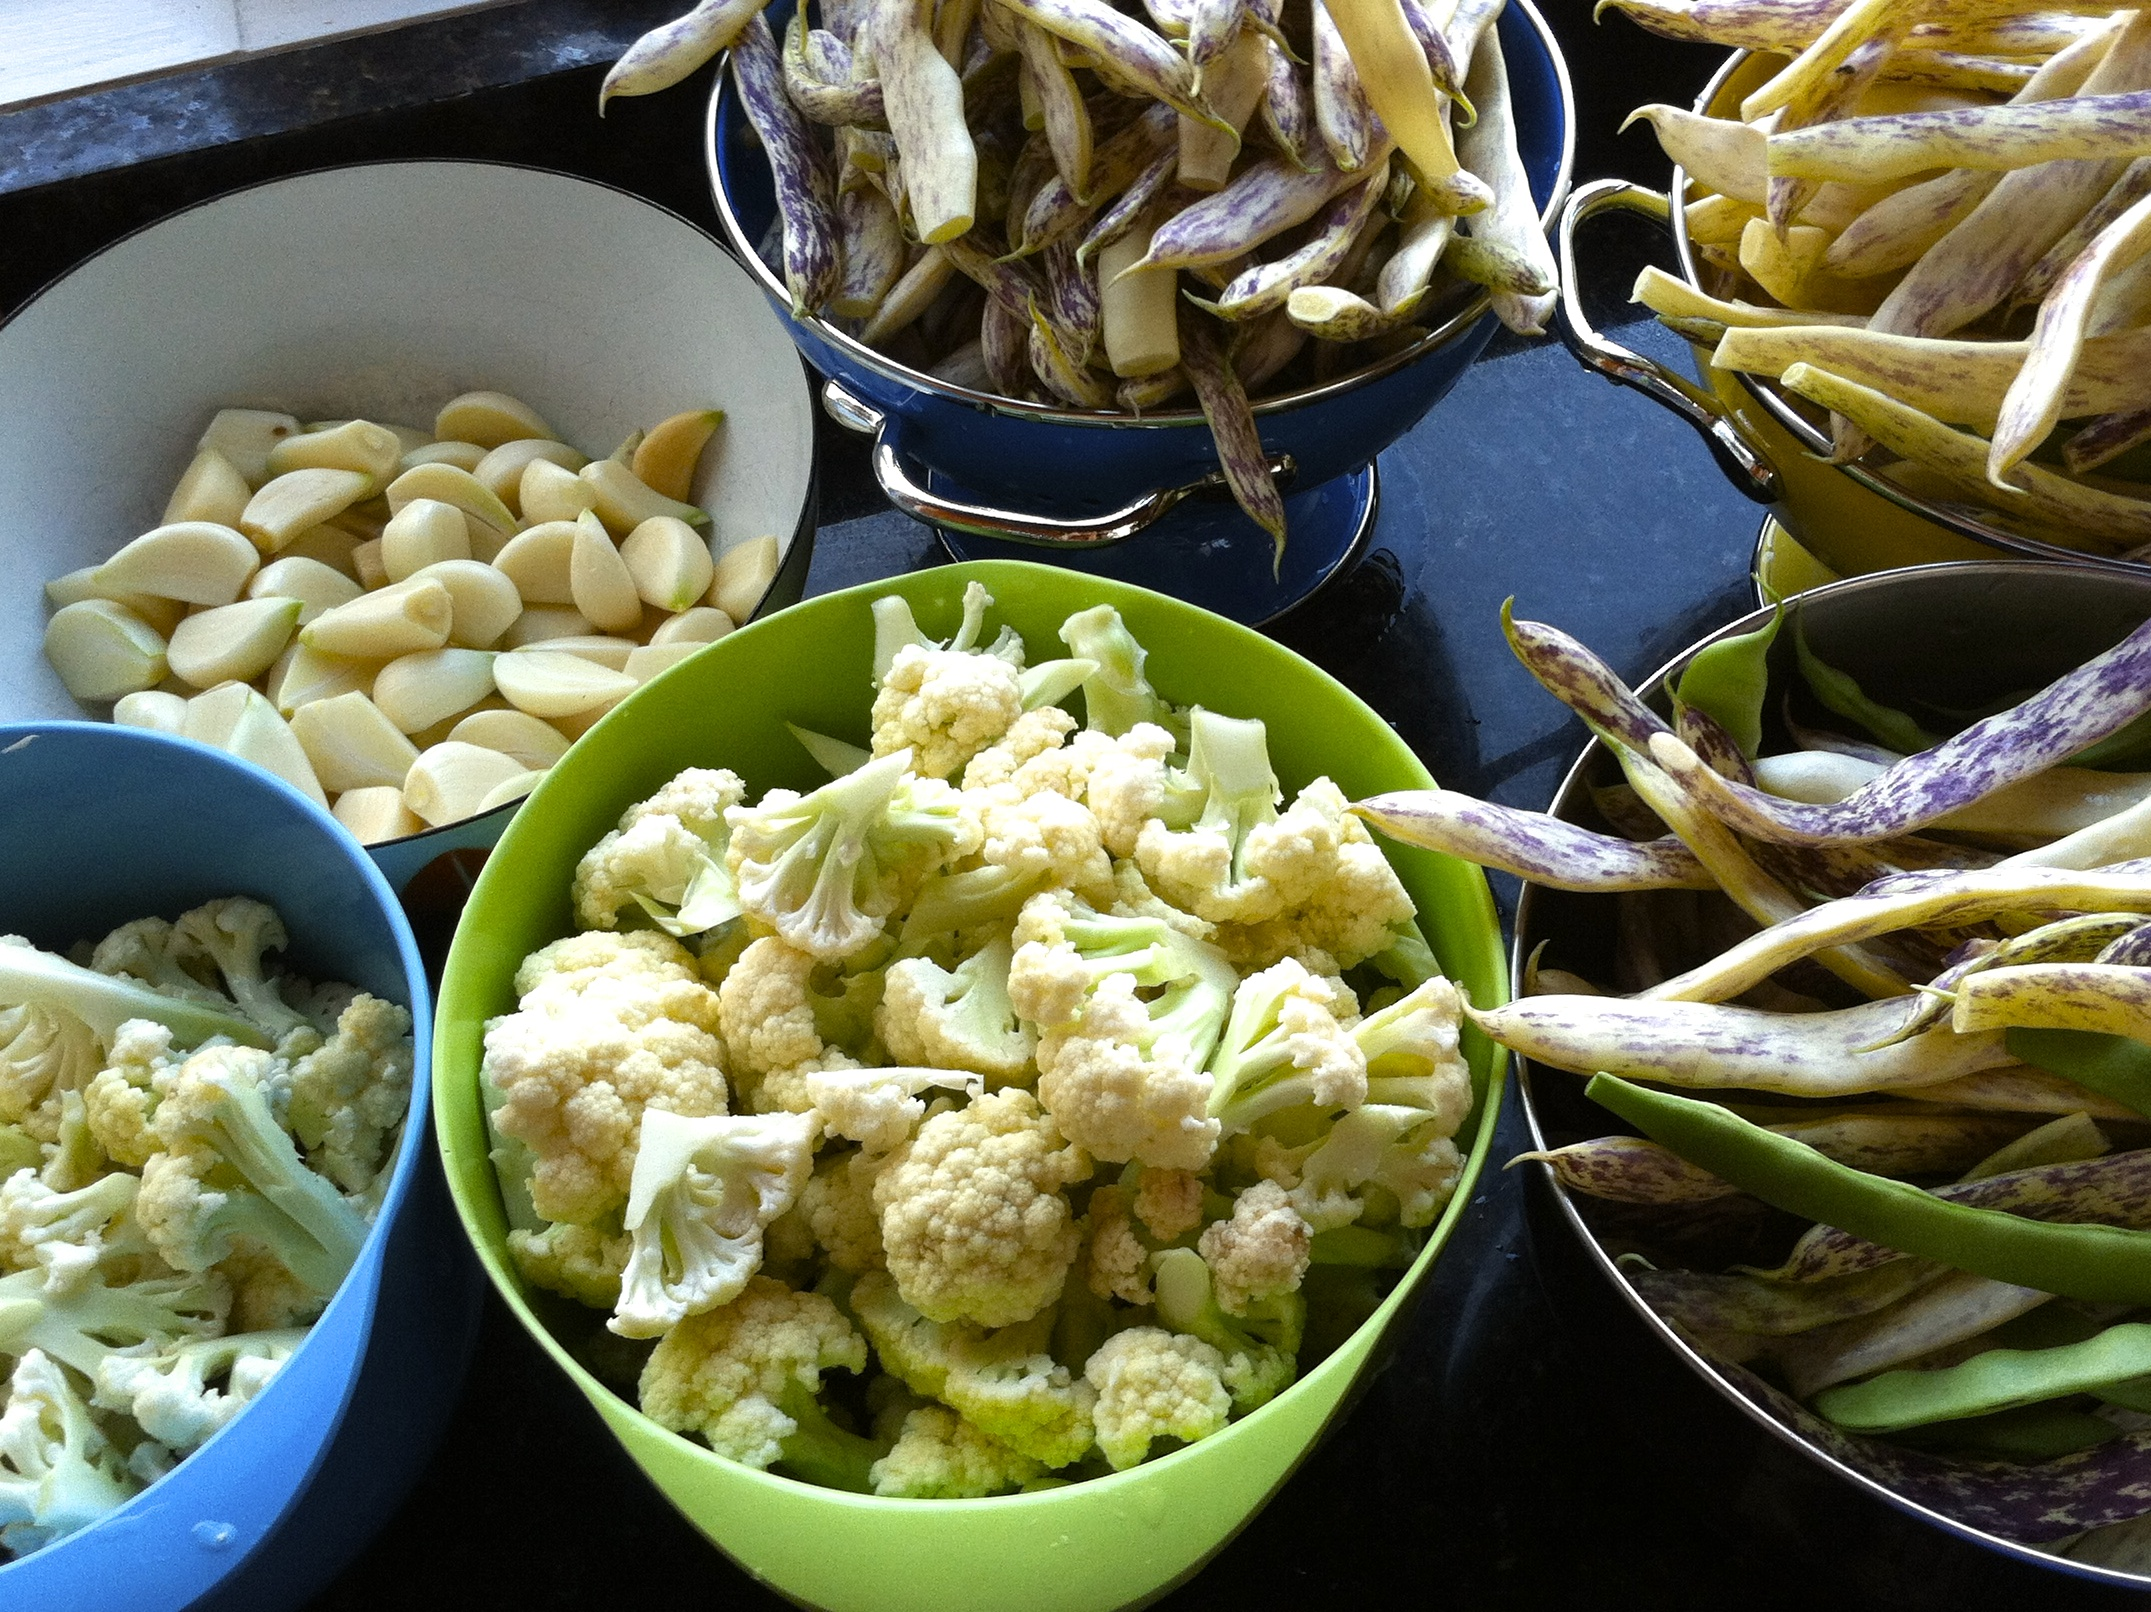 pickle ingredients, cauliflower pickles, dilly beans